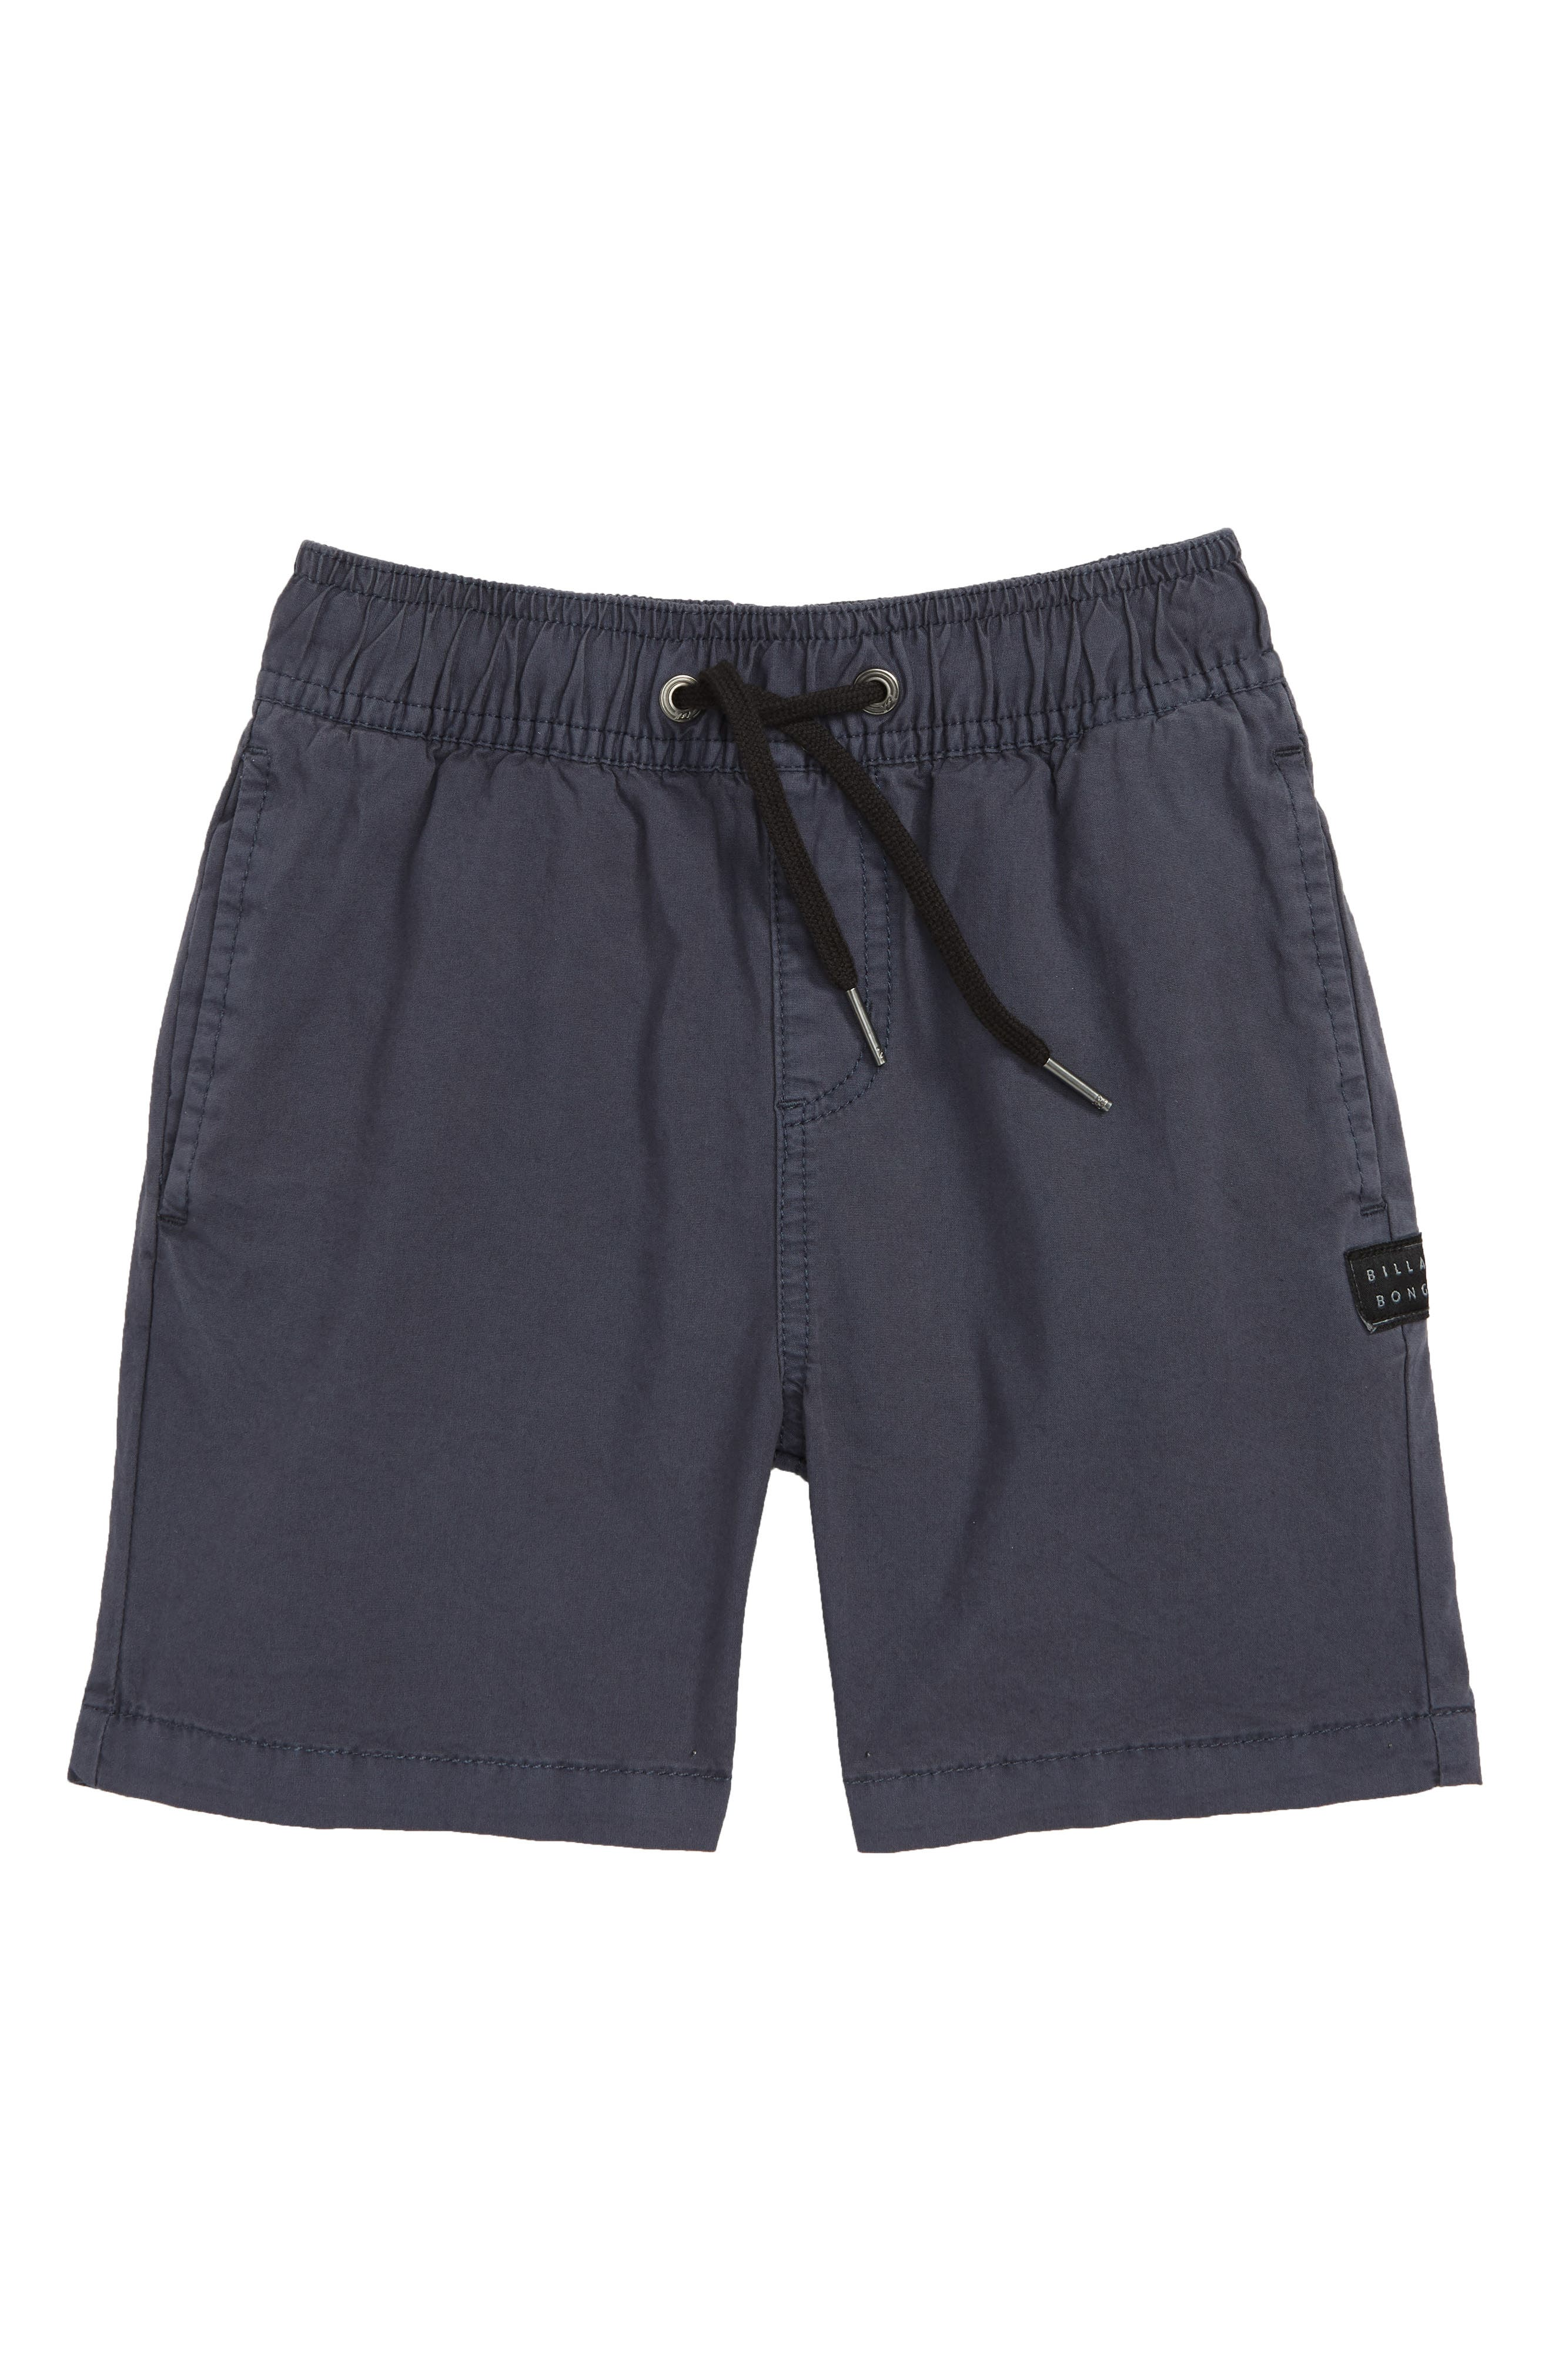 Larry Shorts,                         Main,                         color, WASHED SLATE